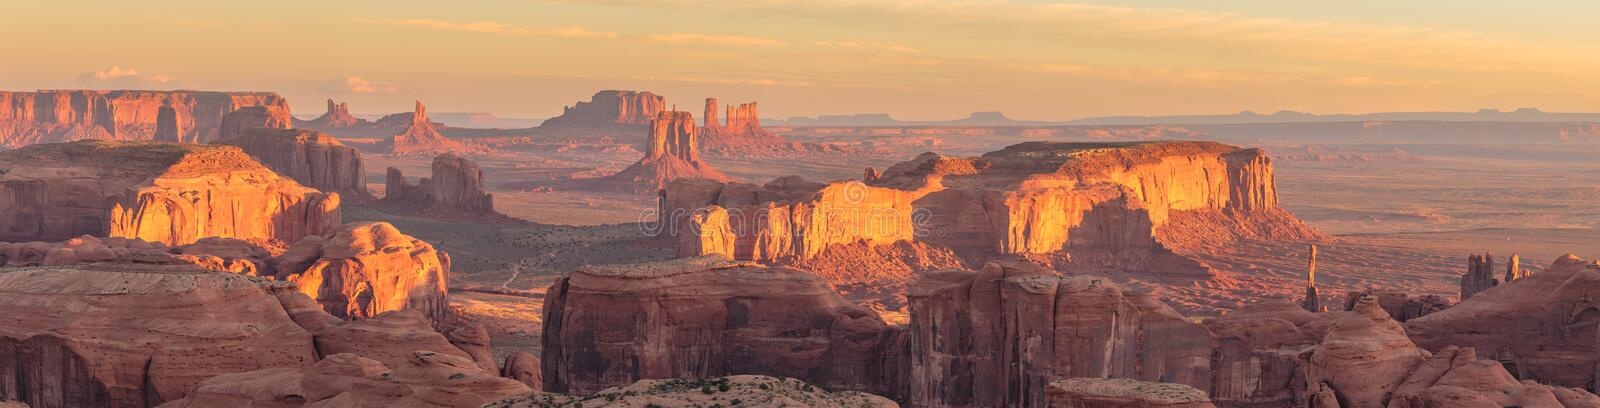 Hunts Mesa. Is a rock formation located in Monument Valley, south of the border between Utah and Arizona in the United States royalty free stock photos